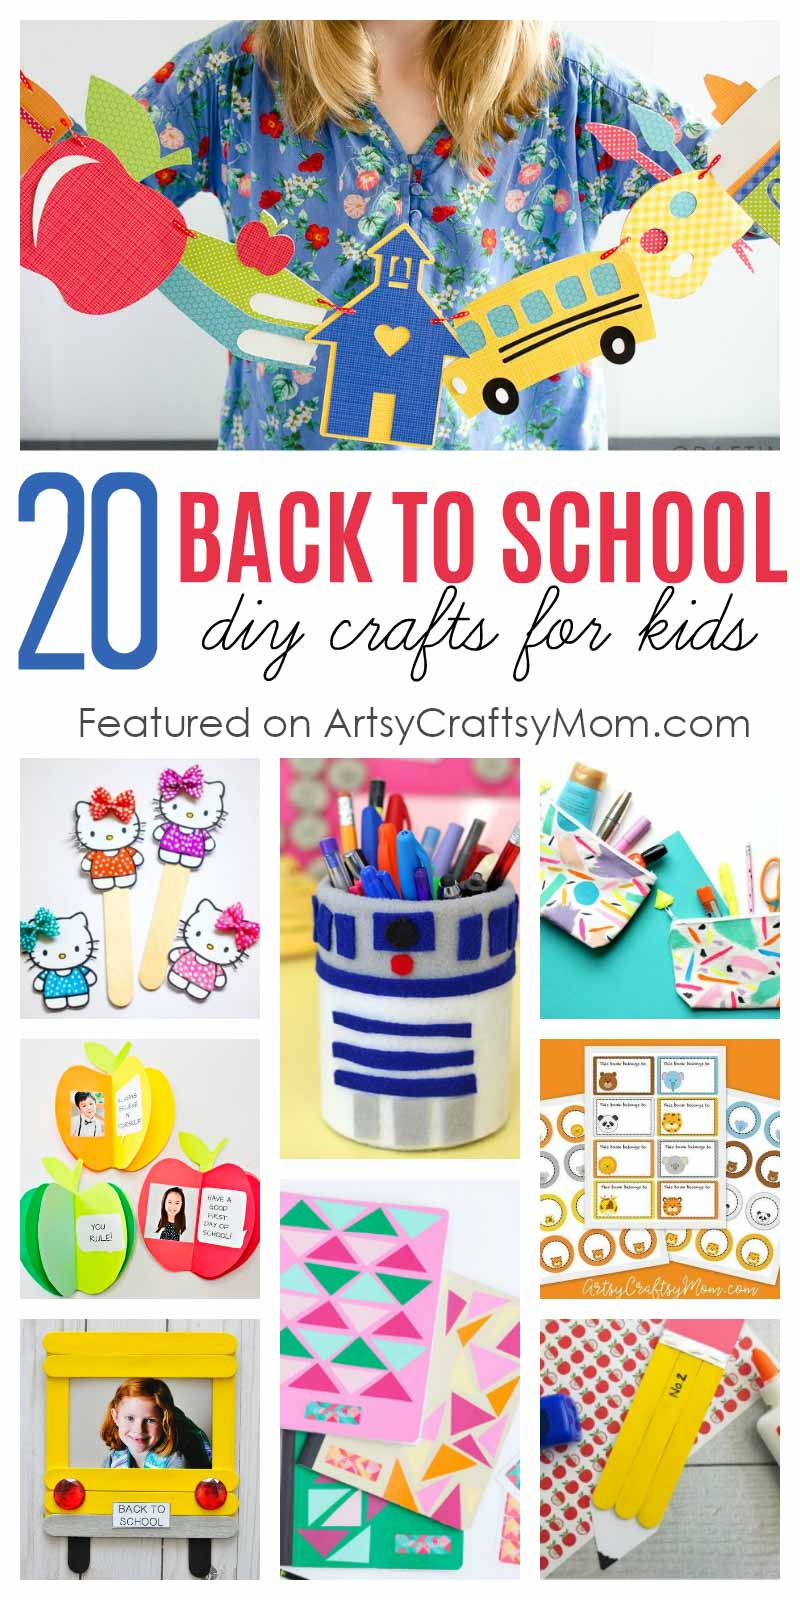 Celebrate the excitement of a new school year with new books, stationery, and our awesome Back to School Crafts to make for themselves or their friends! #backtoschool #diy #stationarycrafts